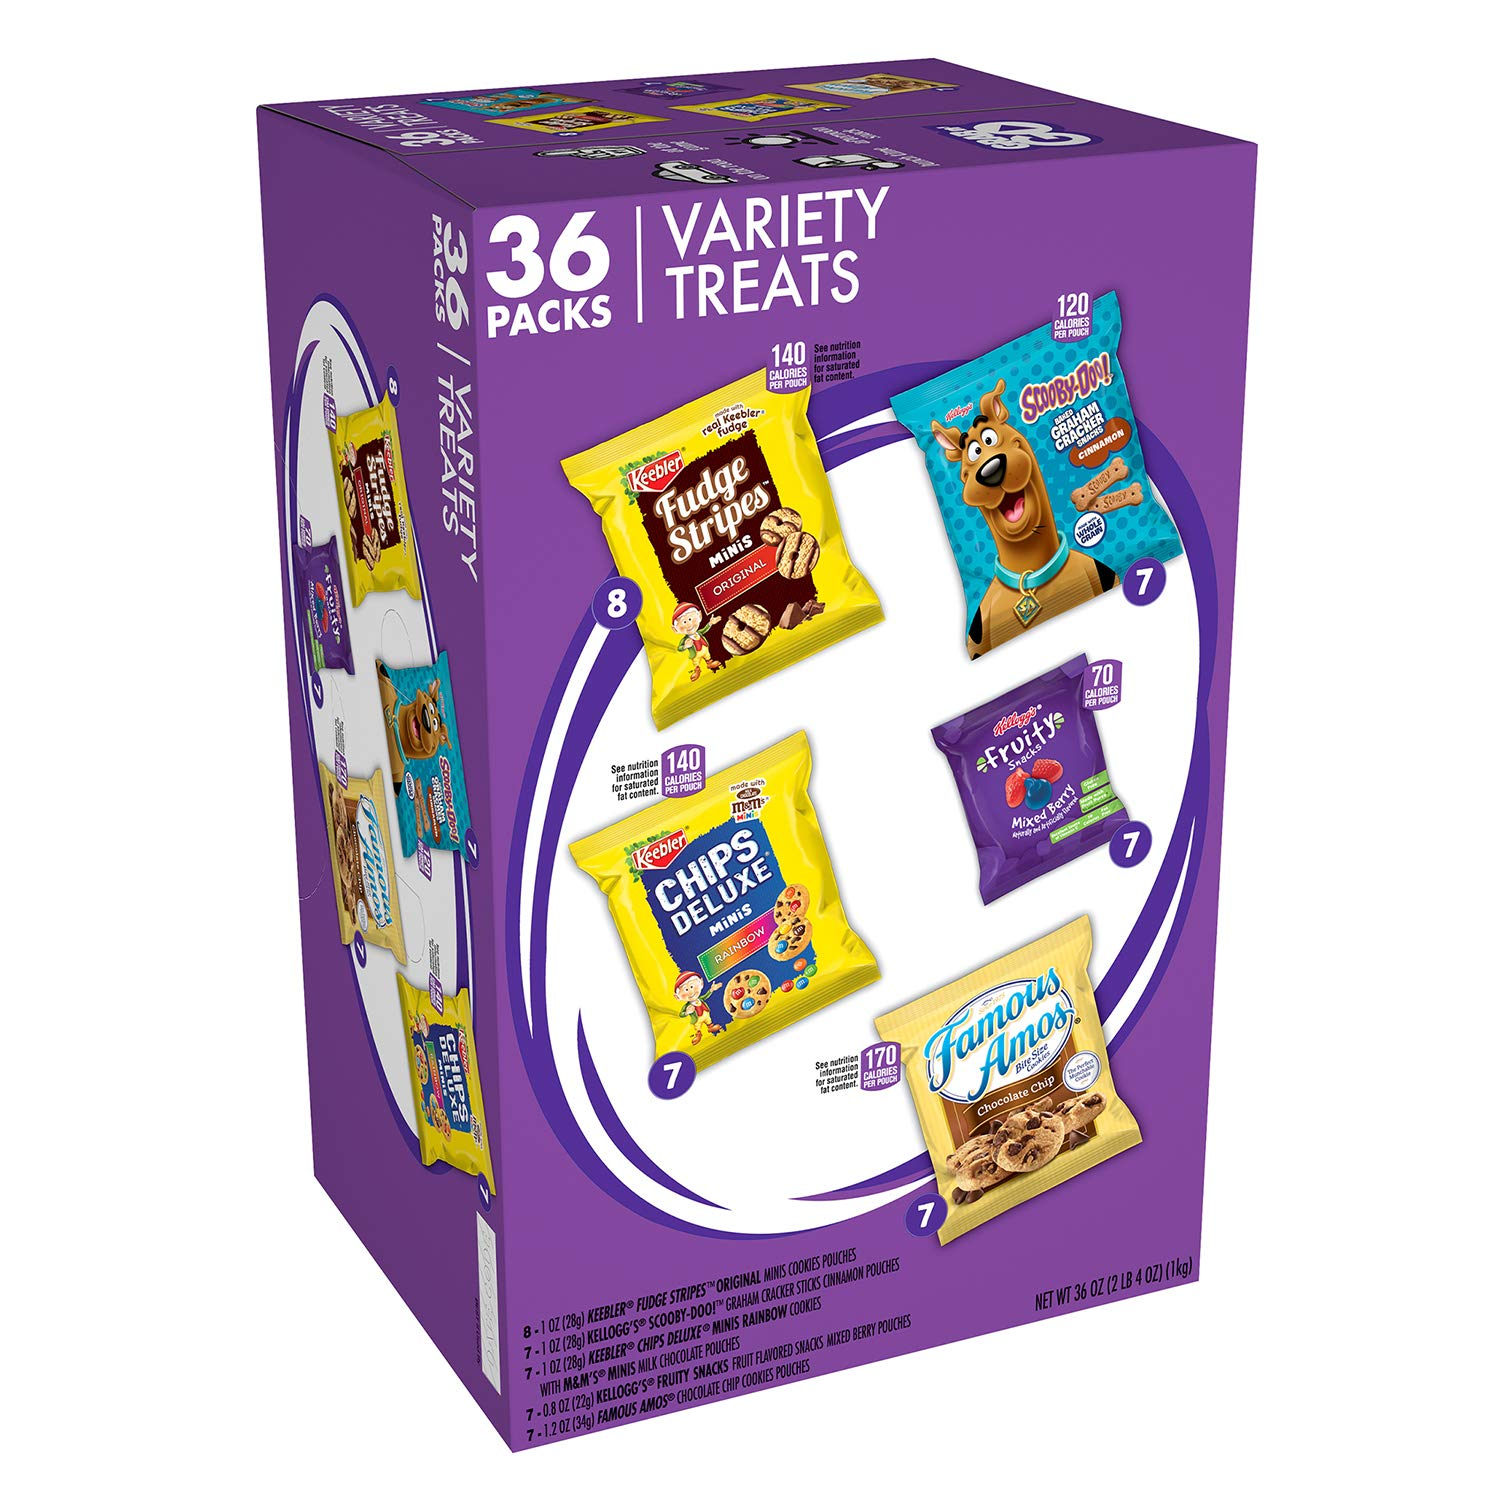 Keebler Sweet Treat Variety Pack, Fudge Stripes, Chips Deluxe Rainbow, Scooby-Doo! Graham Crackers, Famous Amos, Fruity Snacks, Pack of 36, Chocolate Chip